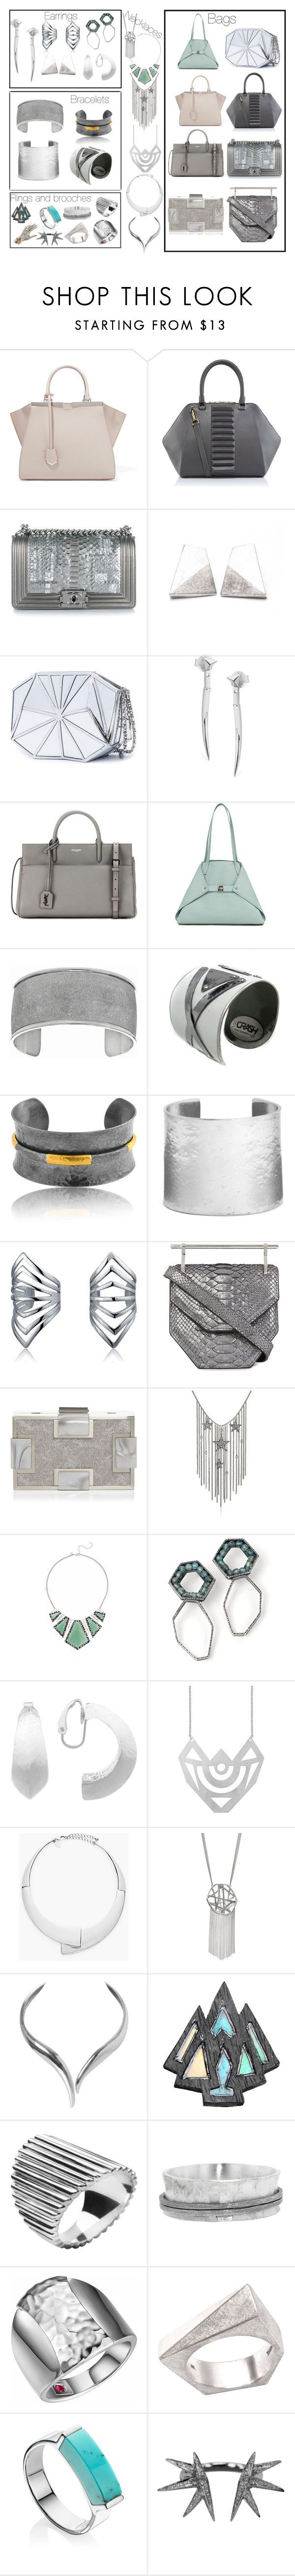 SuYa_accessories by skugge on Polyvore featuring mode, Fendi, Chanel, M2Malletier, Sondra Roberts, Kristina George, Yves Saint Laurent, Akris, Missoma and Karine Sultan